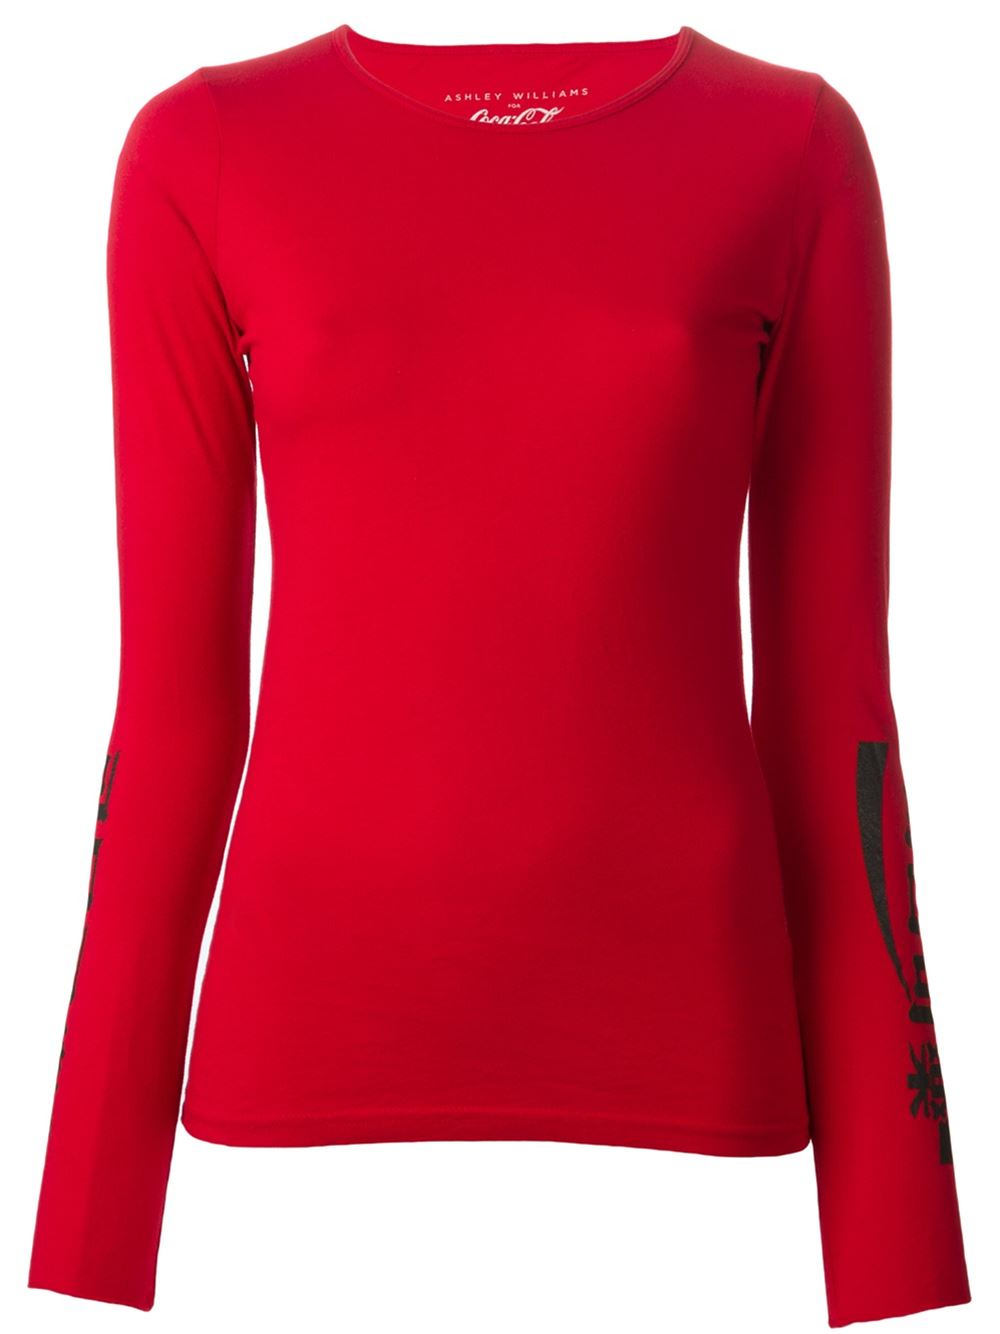 Ashley williams printed long sleeve t shirt in red lyst for Long sleeve printed t shirts